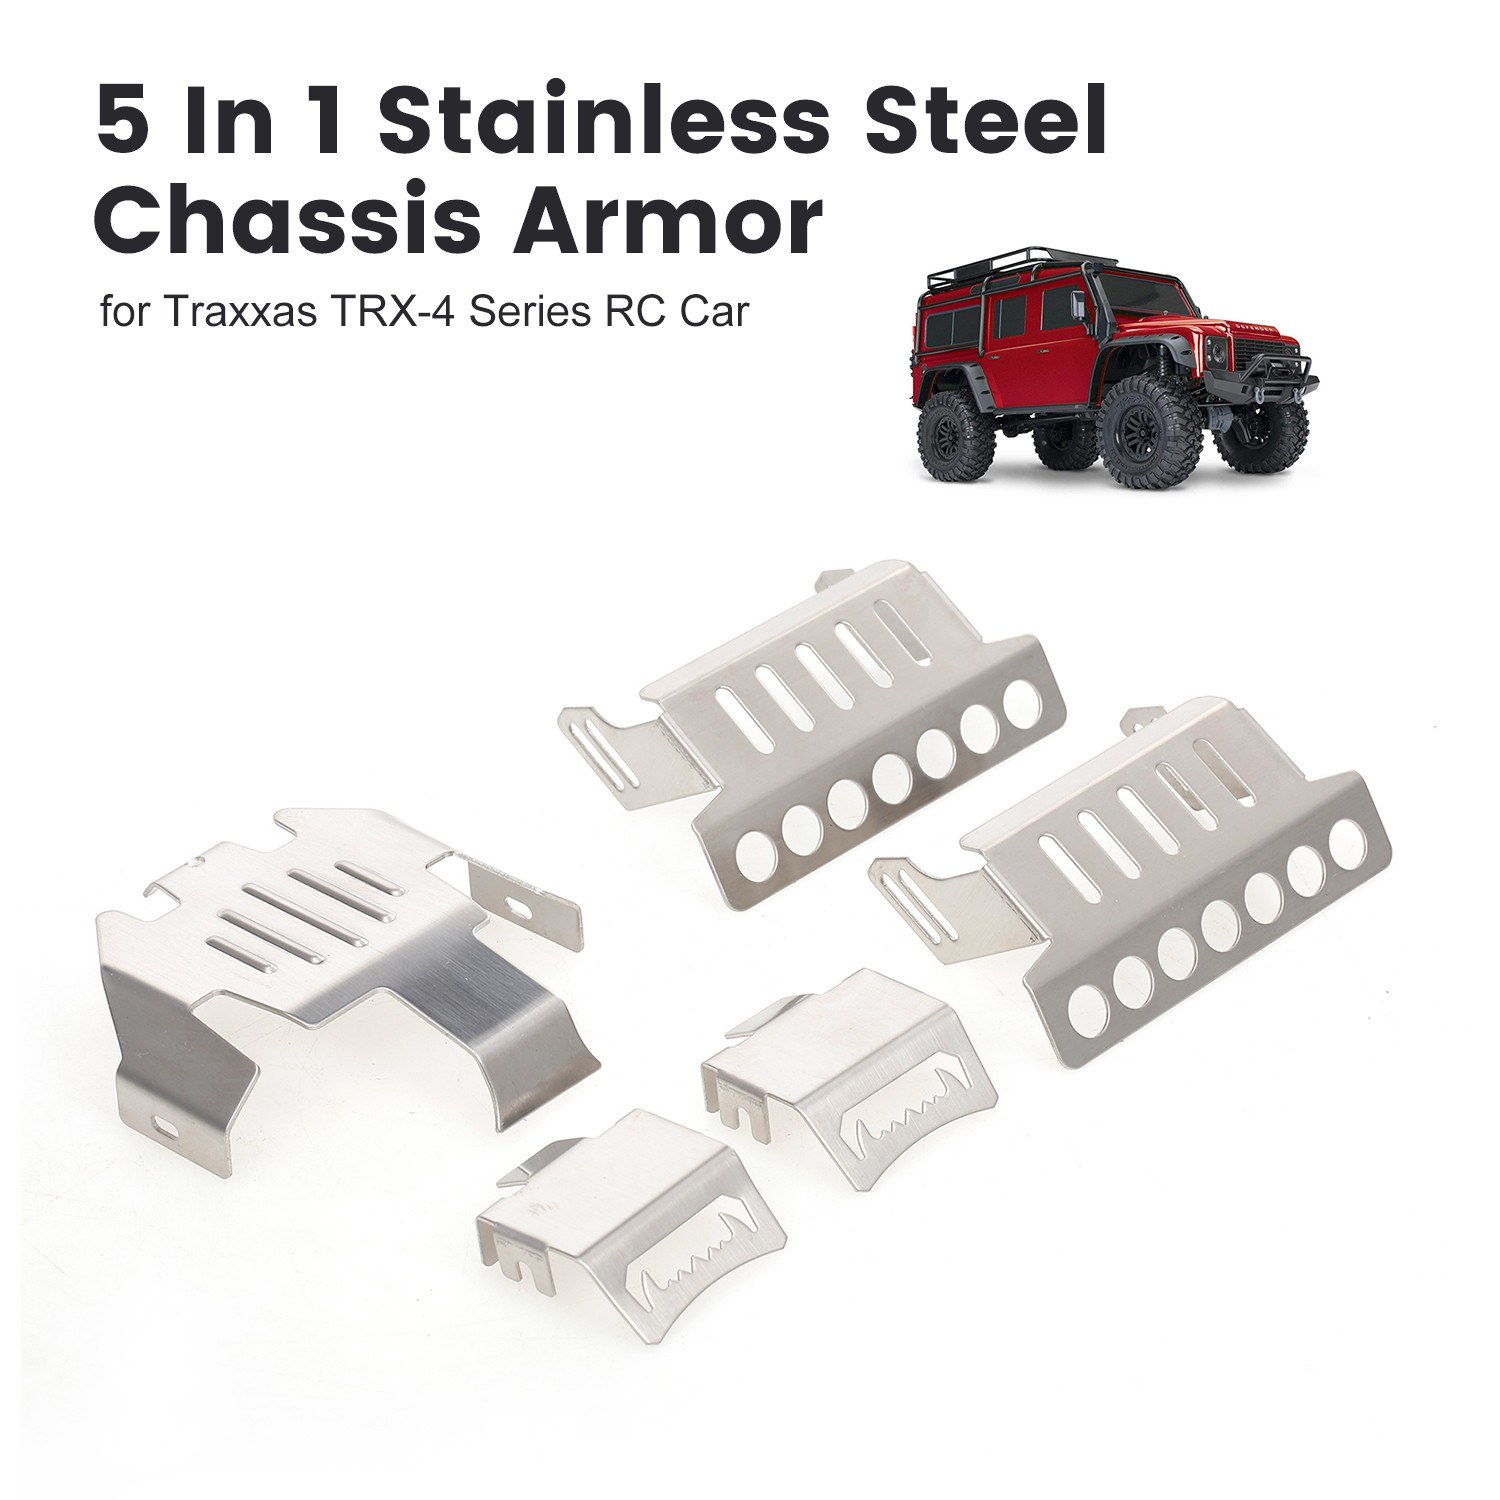 5 In 1 Stainless Steel Chassis Armor Protection Anti-crash Plate Kit for Traxxas TRX-4 Series RC Car